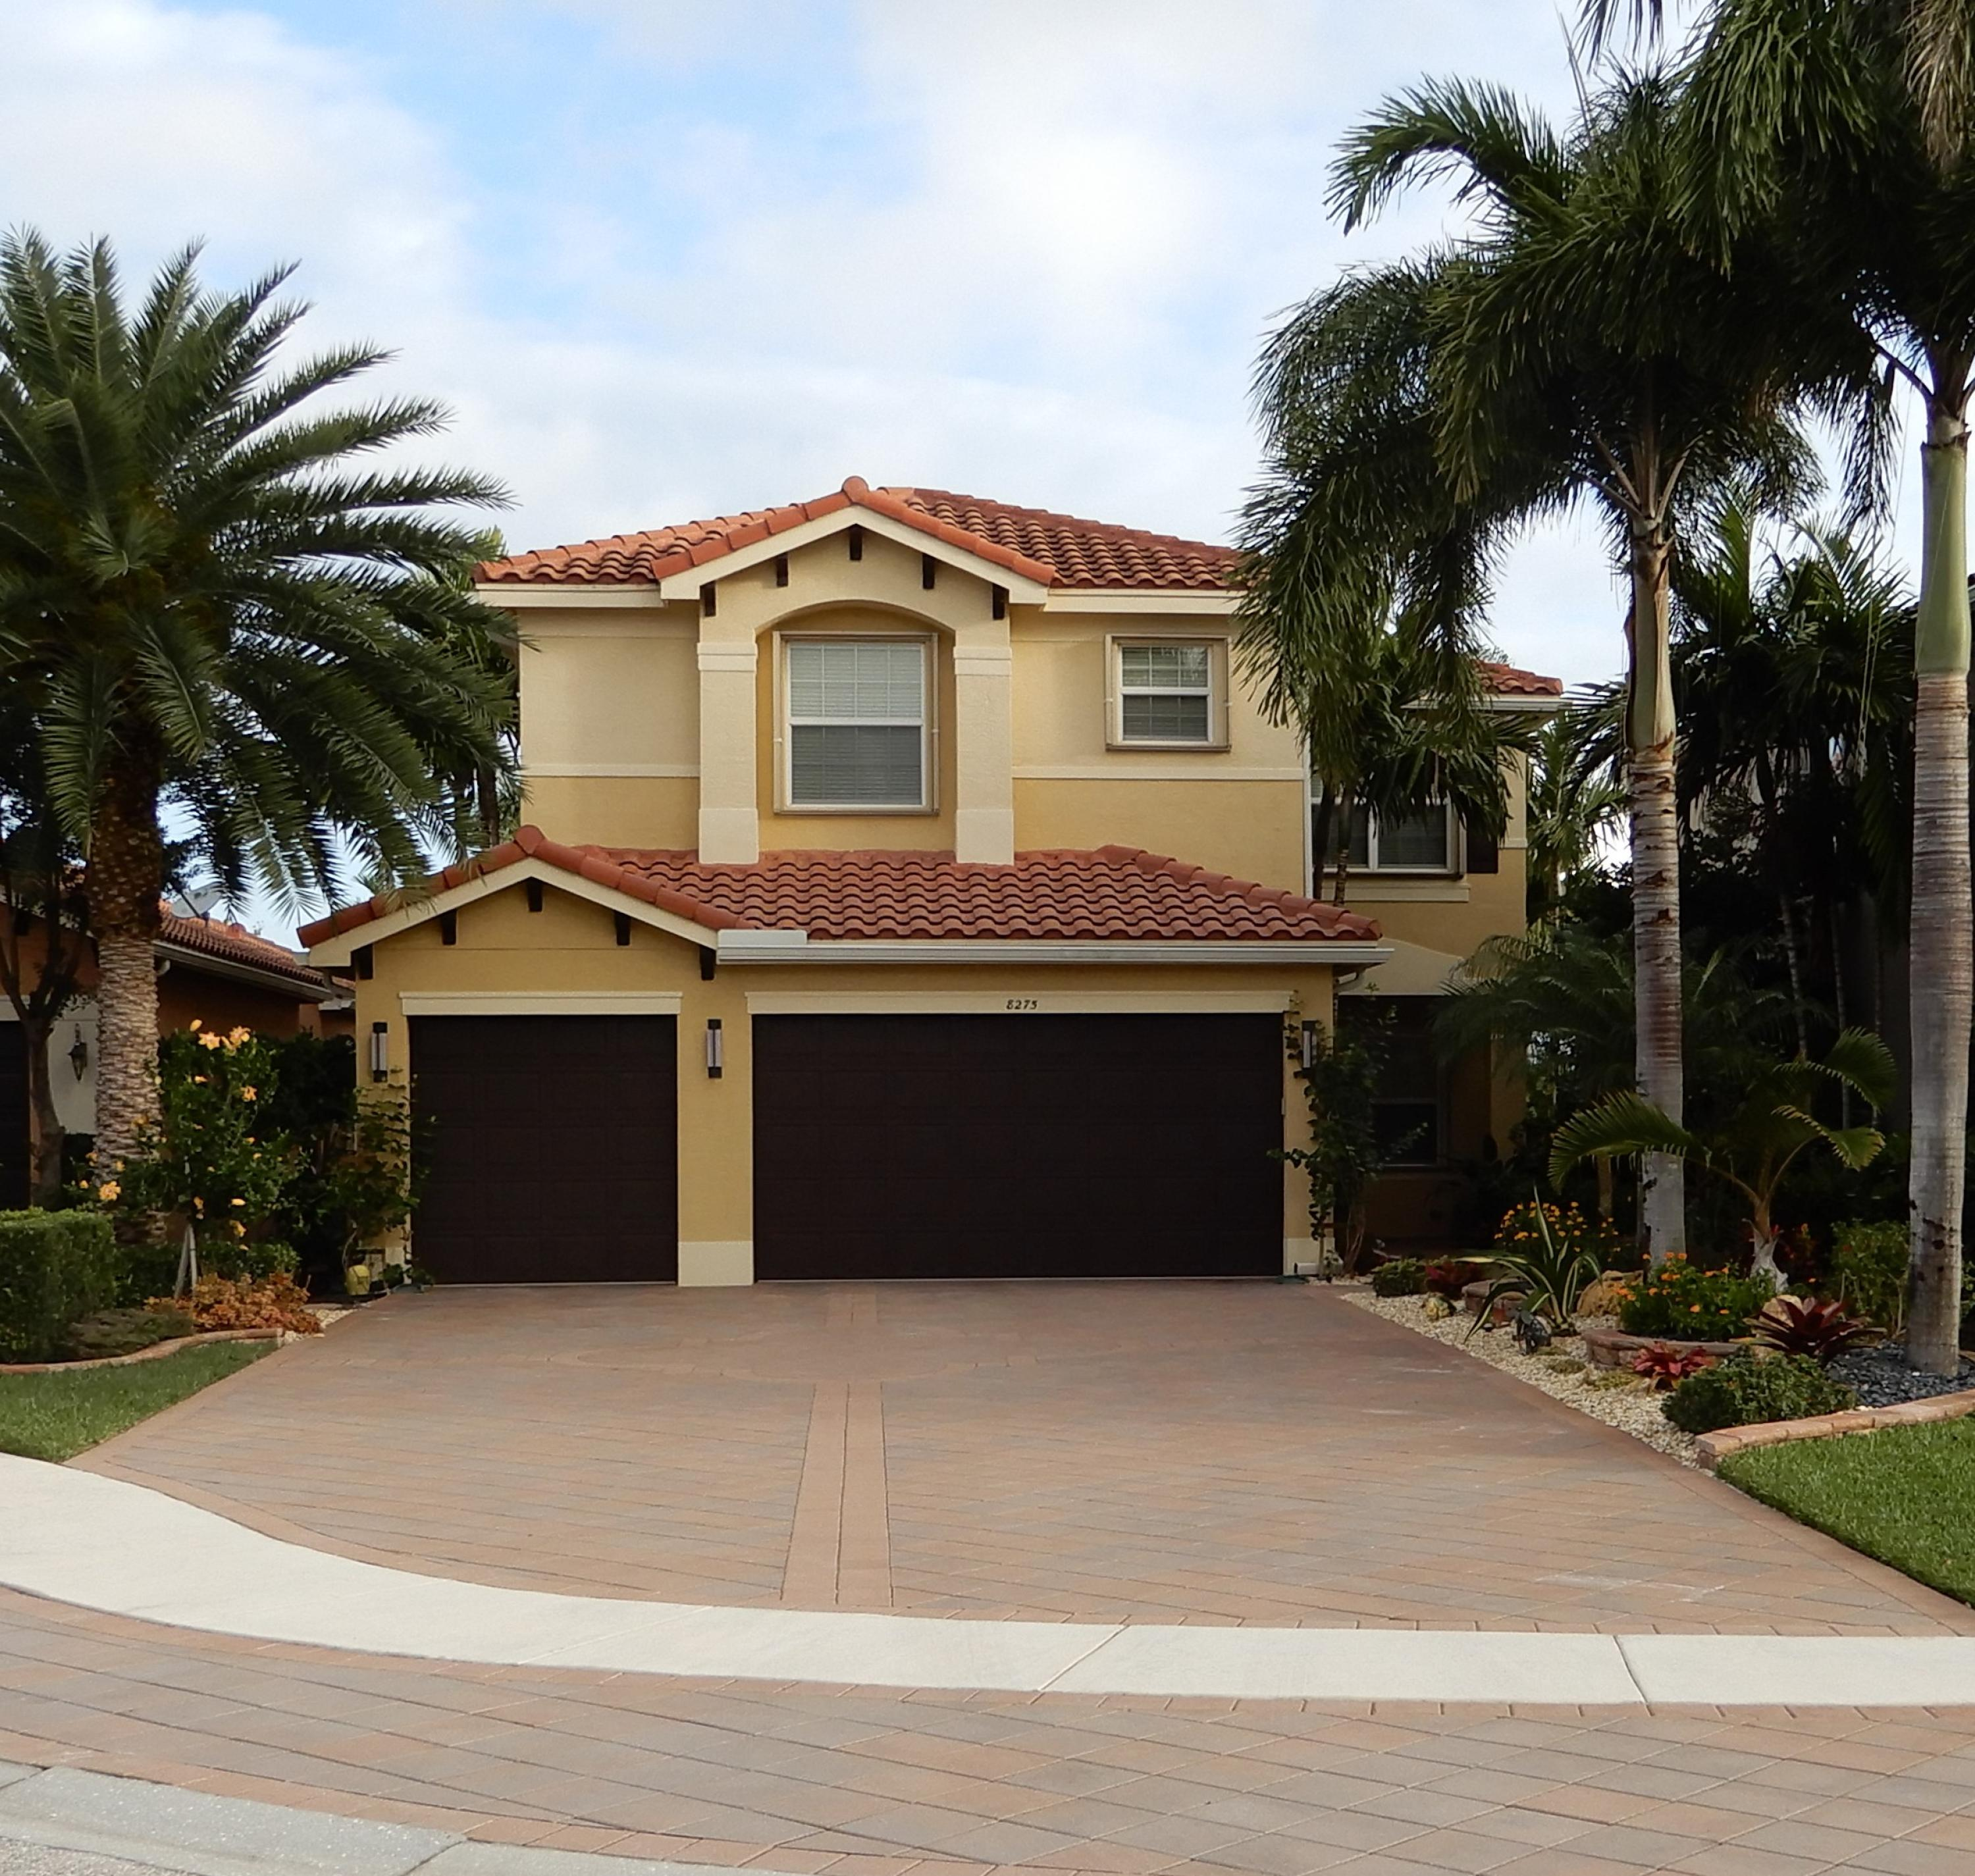 8275 Triana Point Avenue Boynton Beach, FL 33473